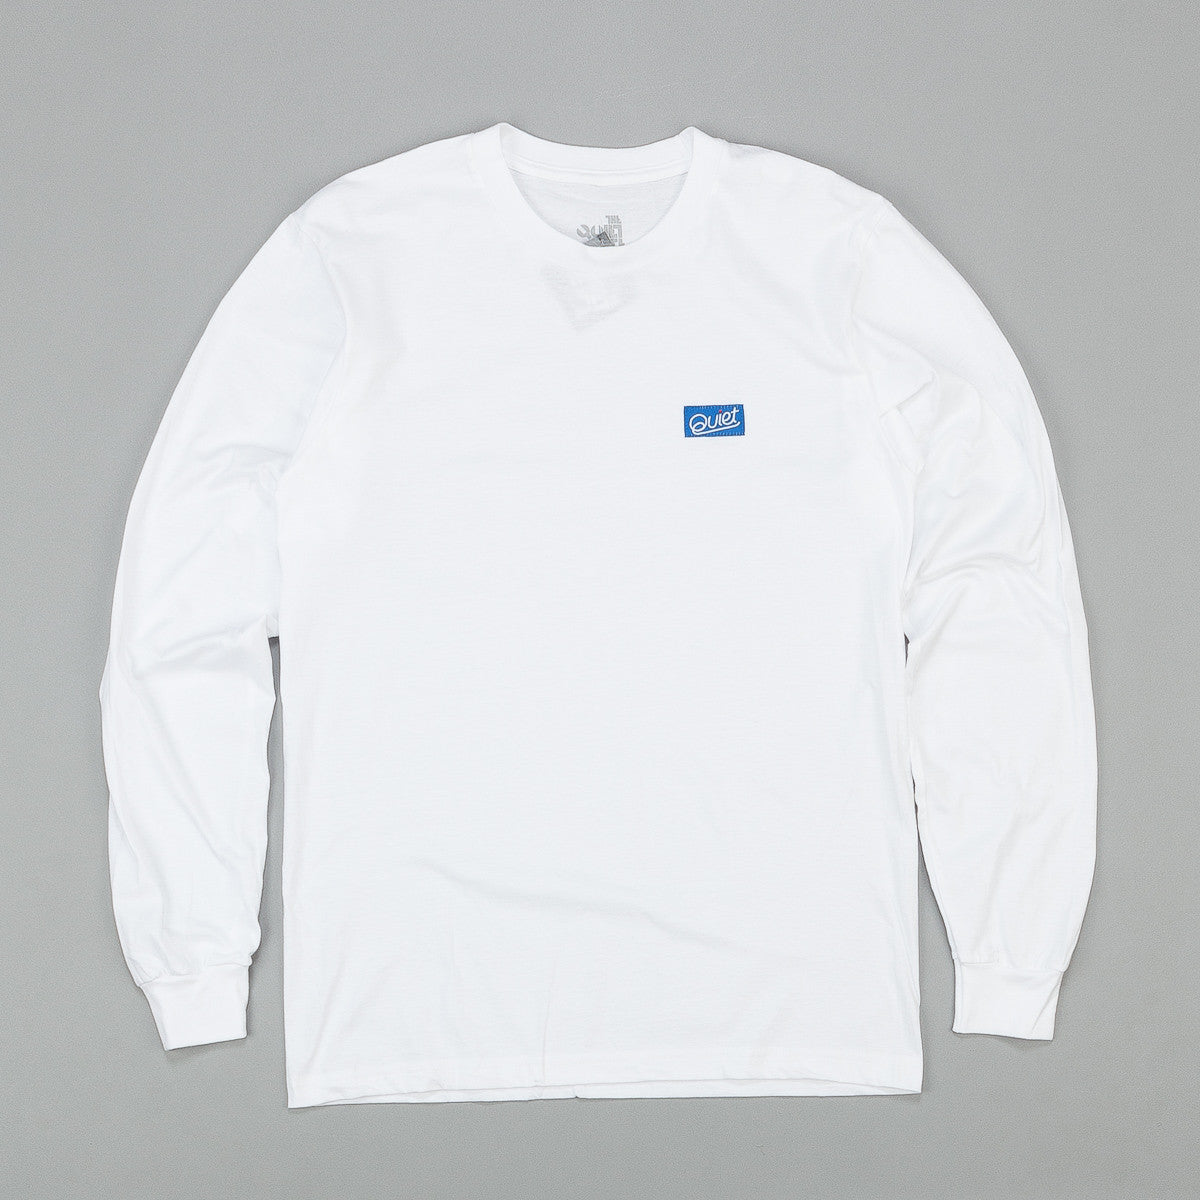 The Quiet Life Quiet Patch Long Sleeve T-Shirt